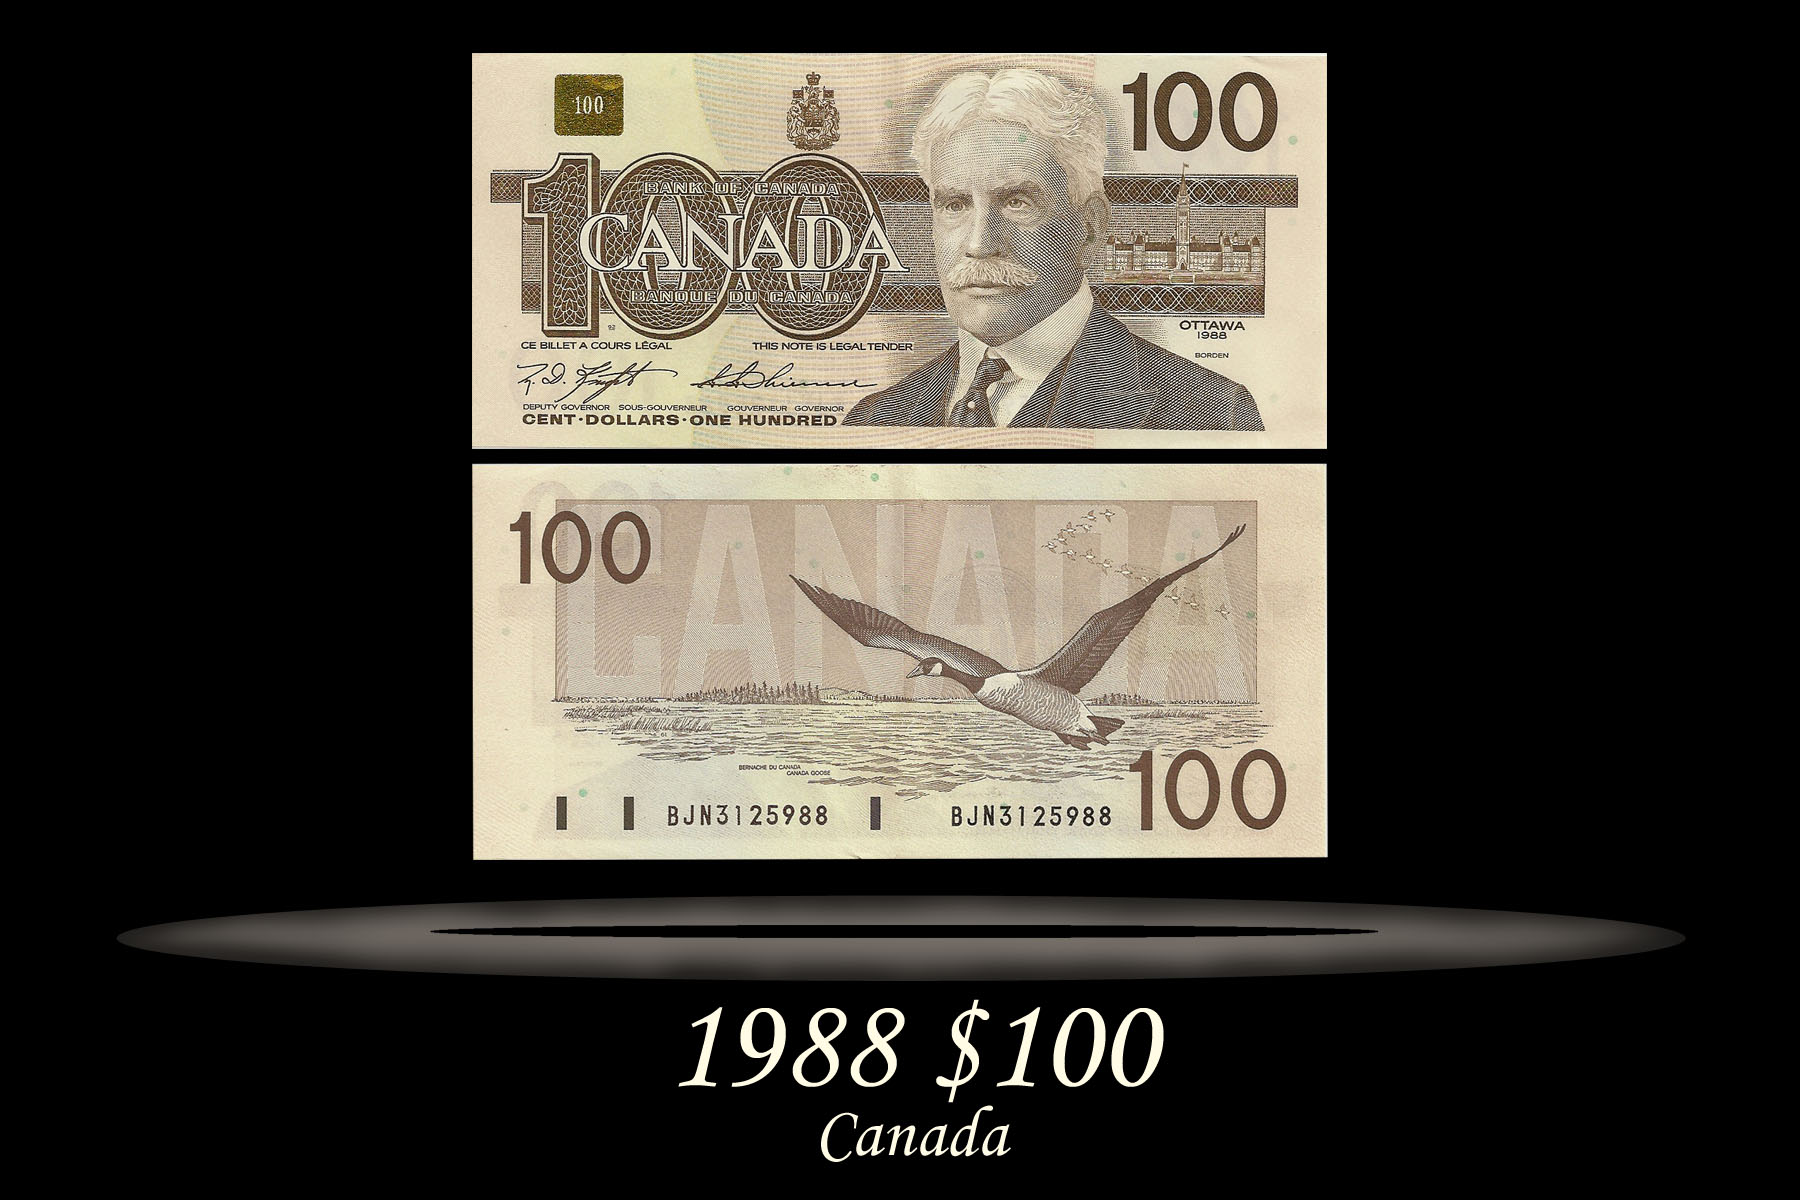 Dollar Bill Thefunkiexpress Gdxb Canadian